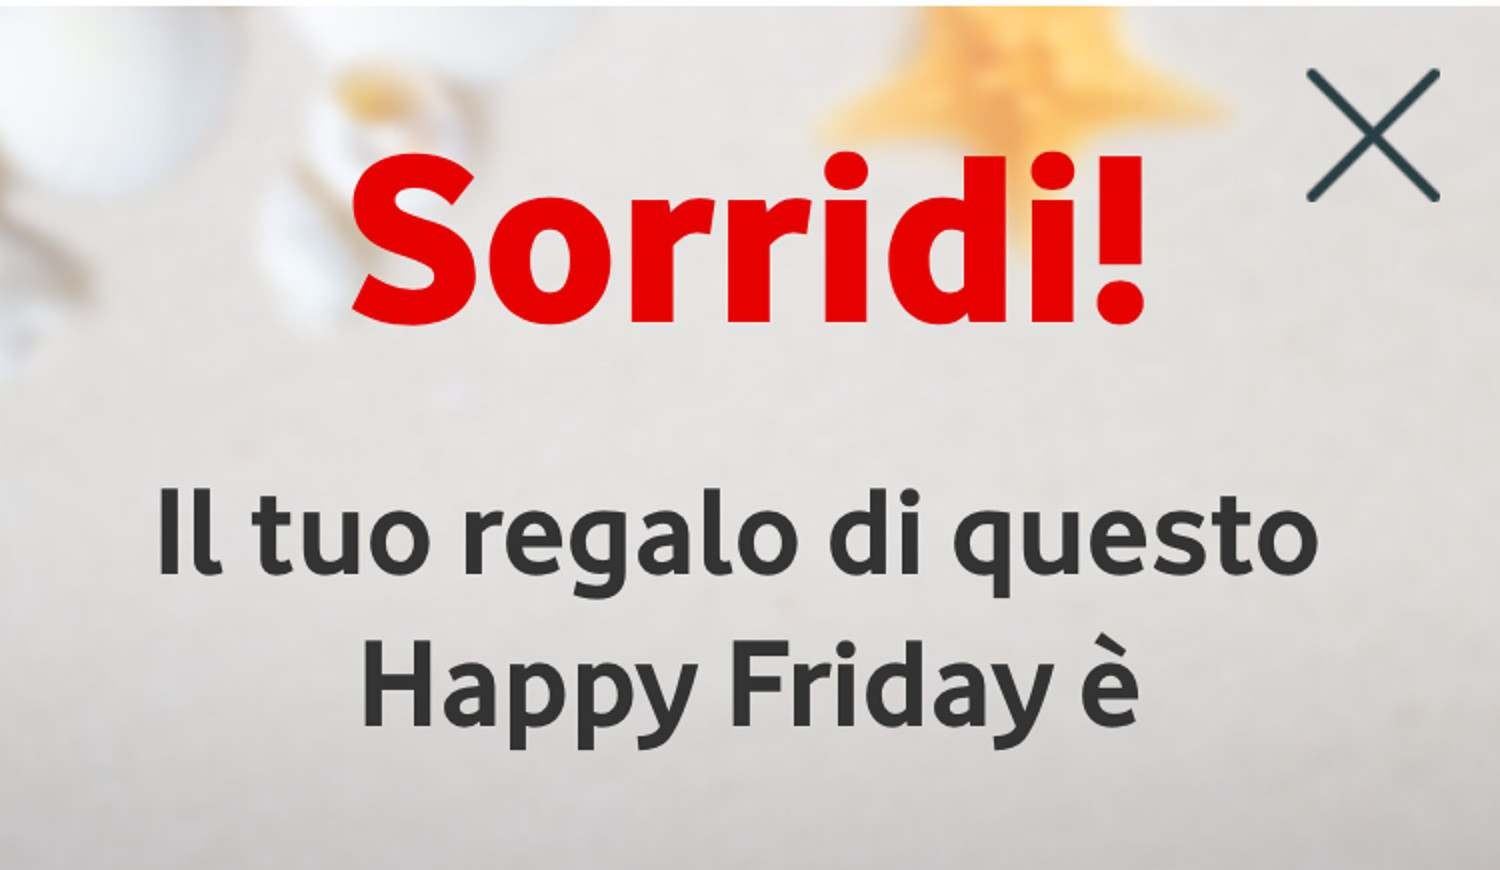 Voda.it/cucina Italiana Anteprima Happy Friday Del 17 Novembre Vanity Fair E La Cucina